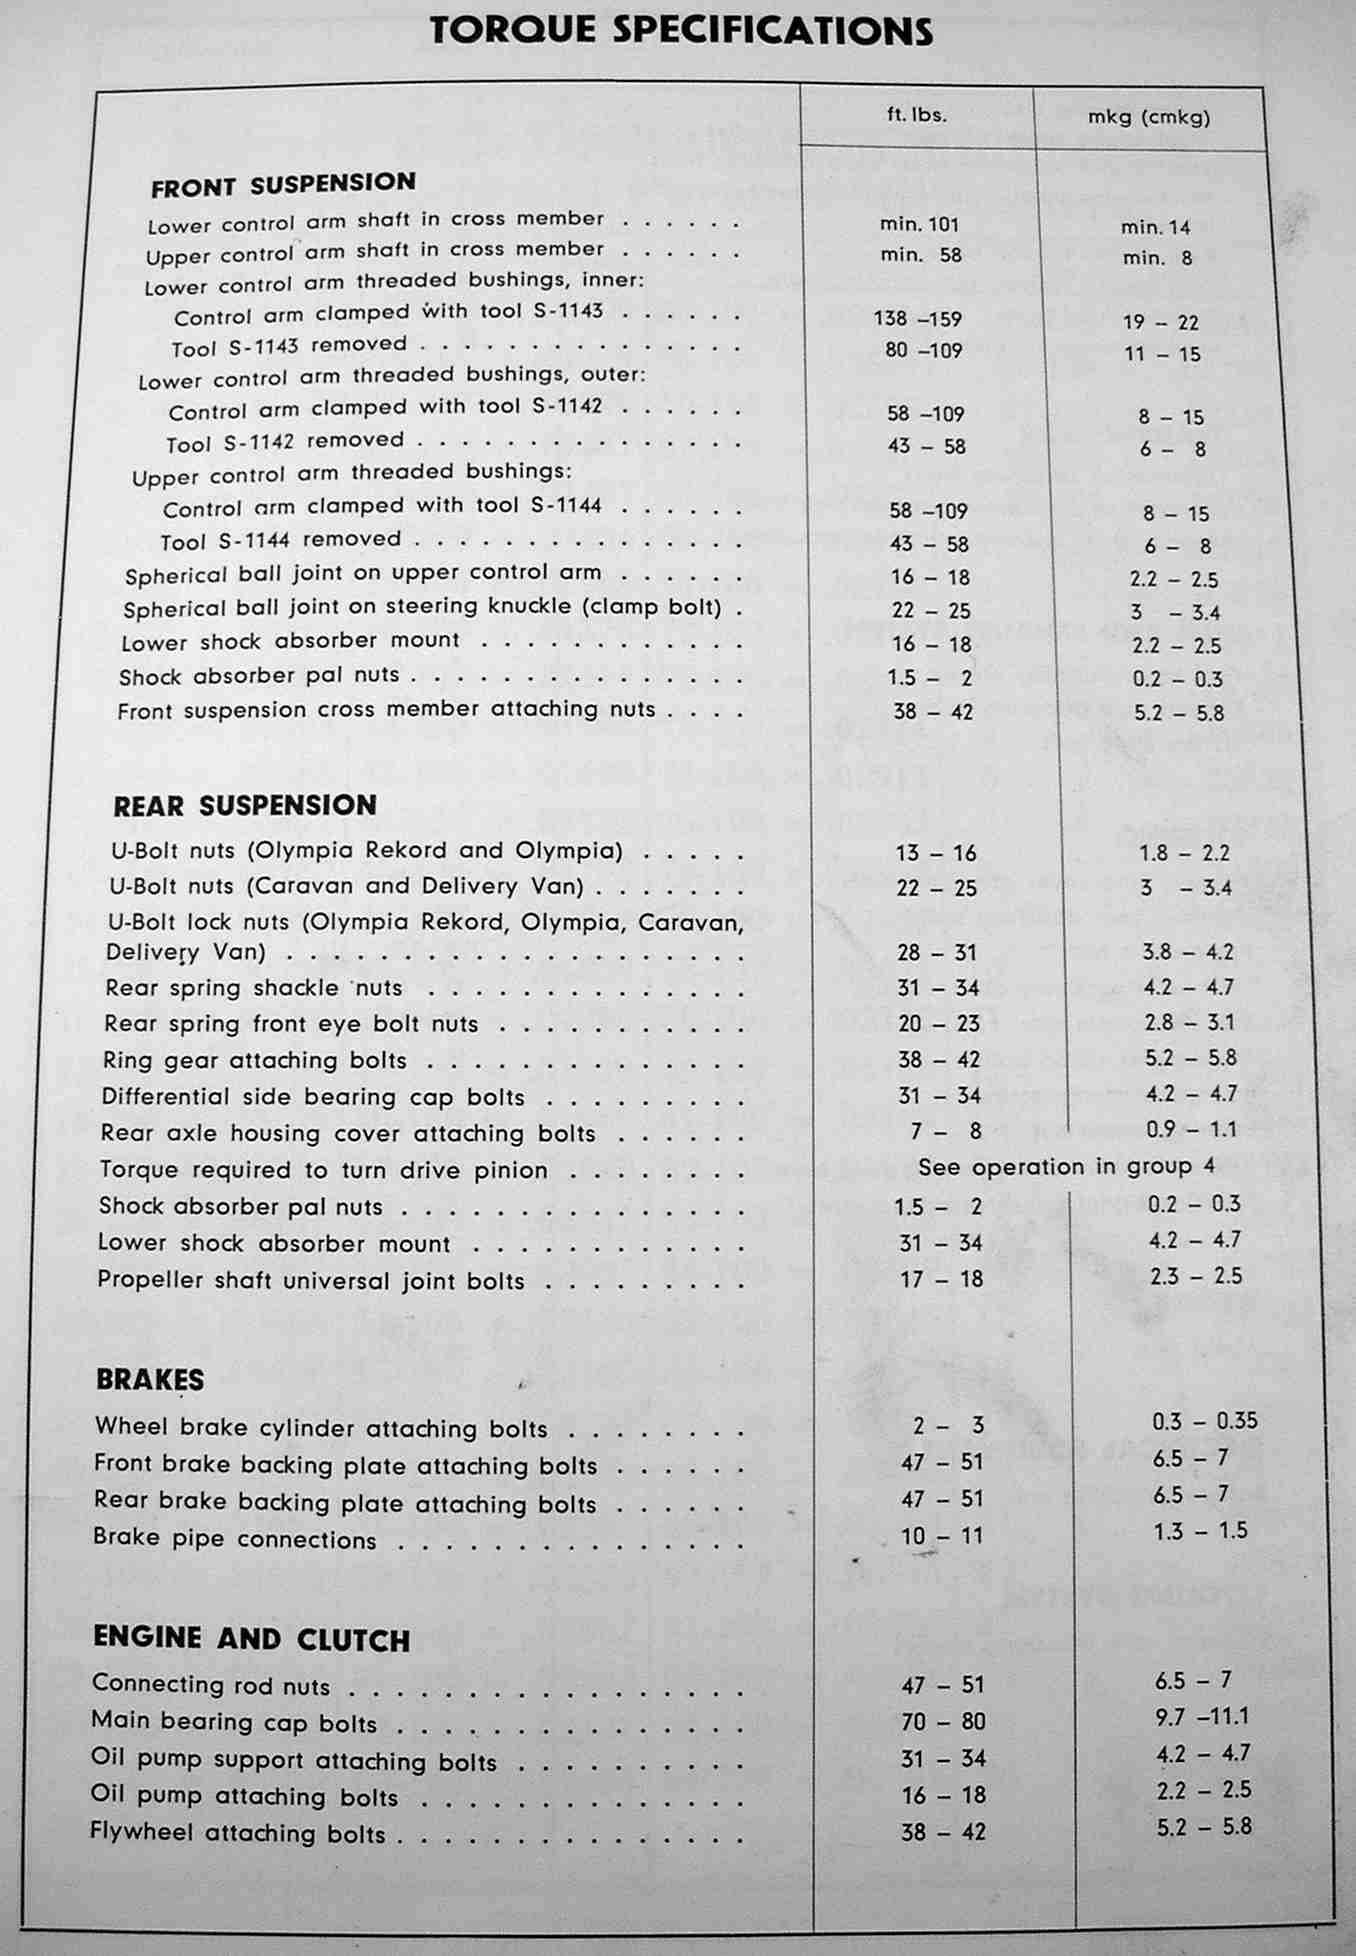 Opel Rekord P Torque Specifications from 1958 shop manual - page 1